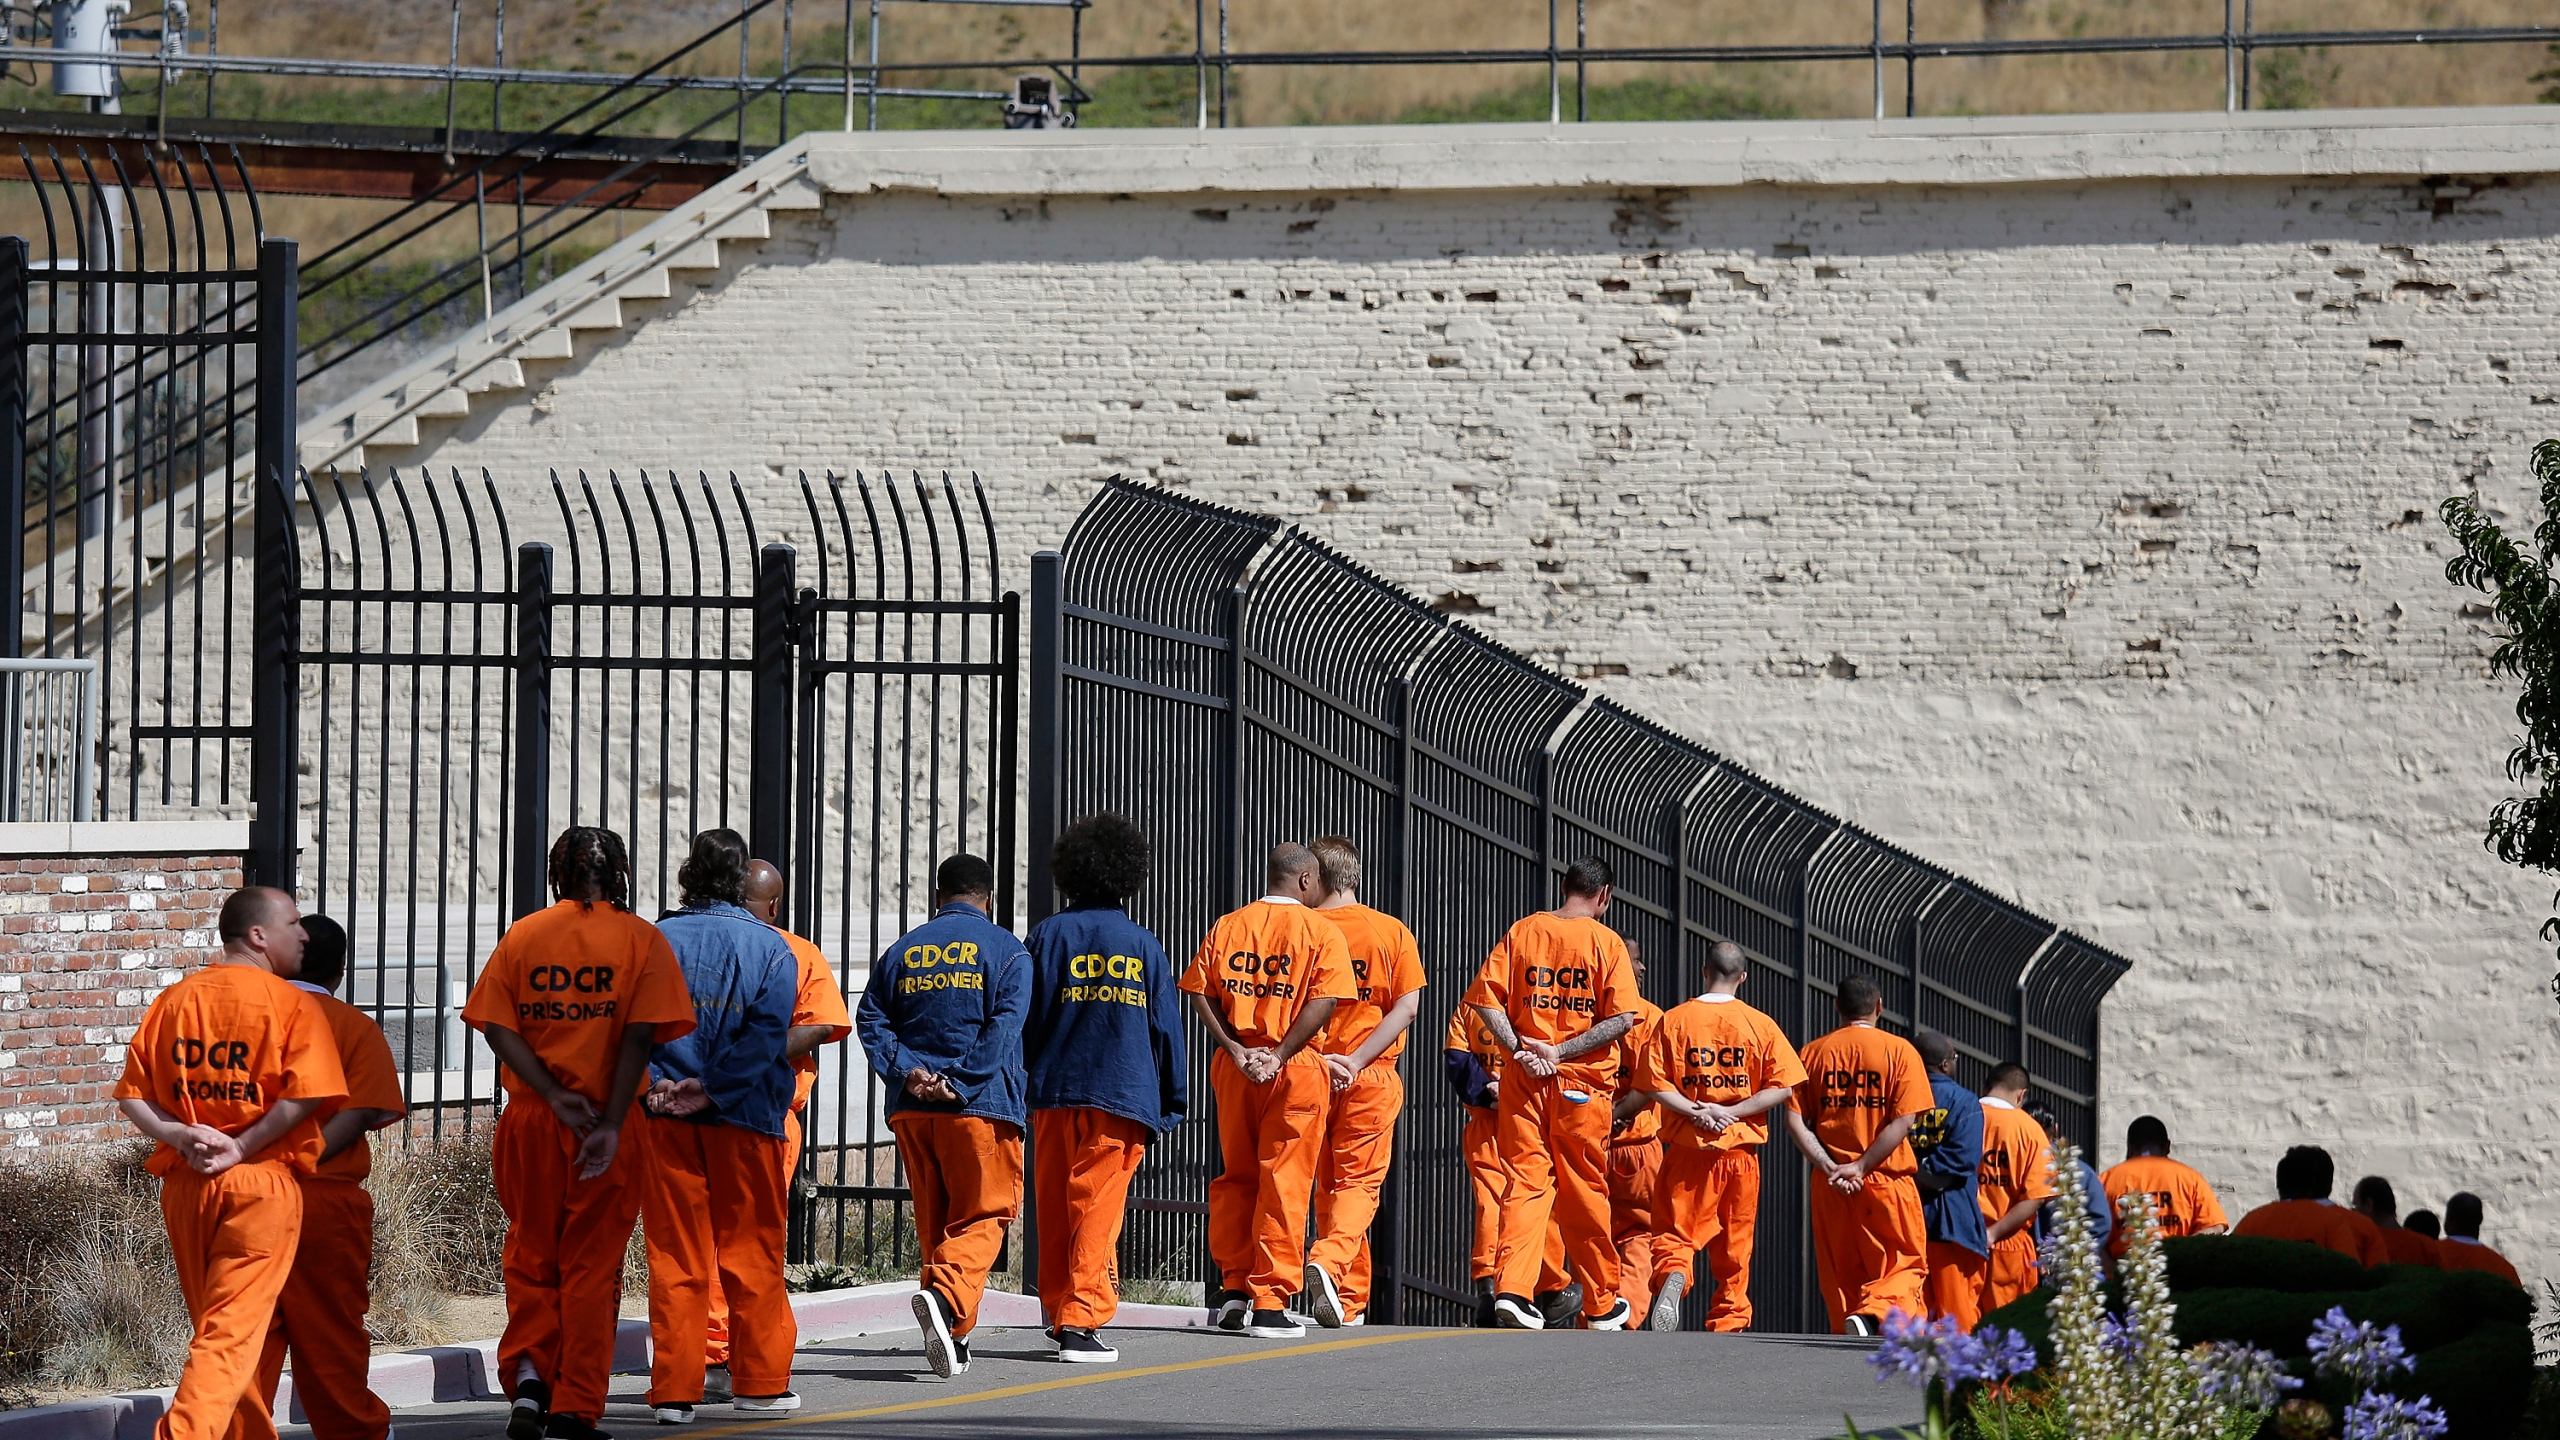 In this Aug. 16, 2016, file photo, a row of general population inmates walk in a line at San Quentin State Prison in San Quentin, Calif. Three-quarters of California's district attorneys sued the state Wednesday, May 26, 2021, in an attempt to block emergency rules that expand good conduct credits and could eventually bring earlier releases for tens of thousands of inmates. (AP Photo/Eric Risberg, File)